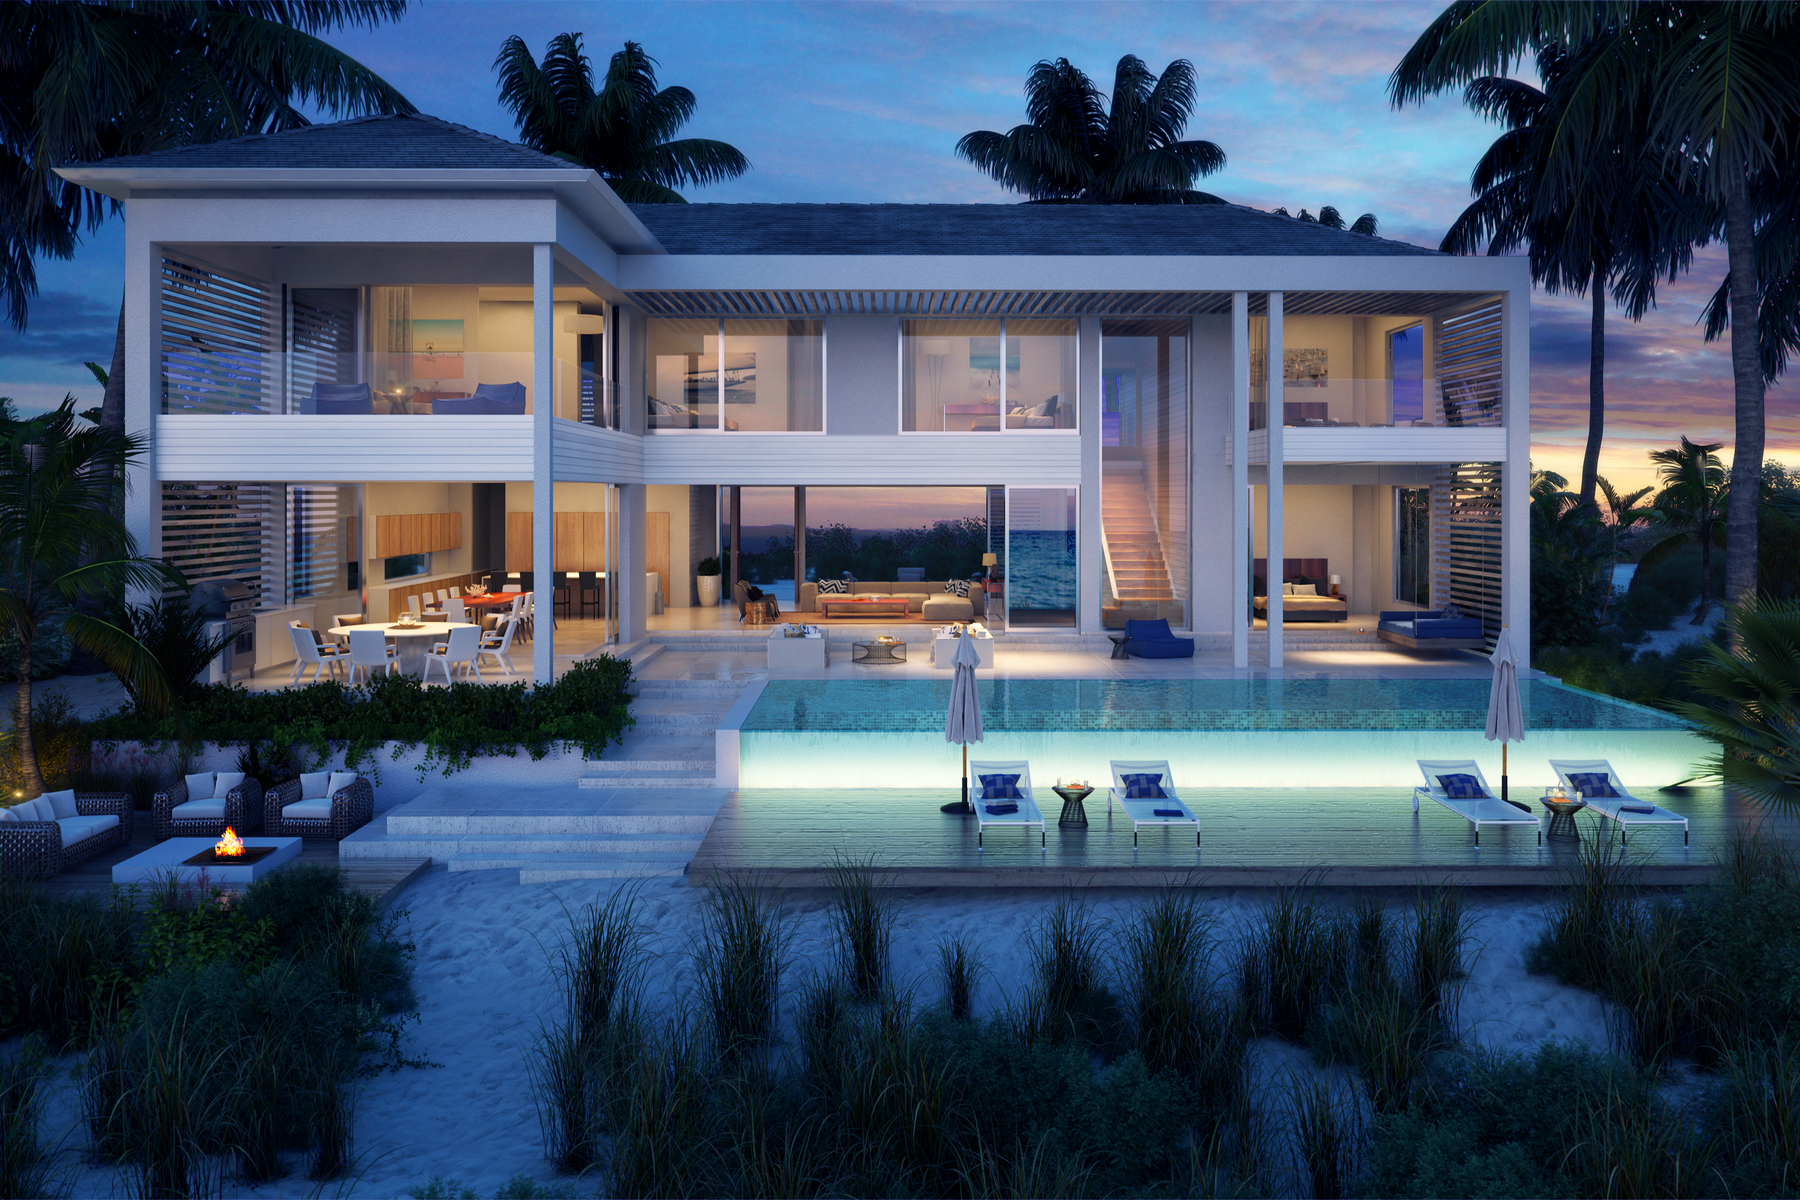 Single Family Home for Sale at BEACH ENCLAVE GRACE BAY Design B Beachfront Grace Bay, TCI Turks And Caicos Islands